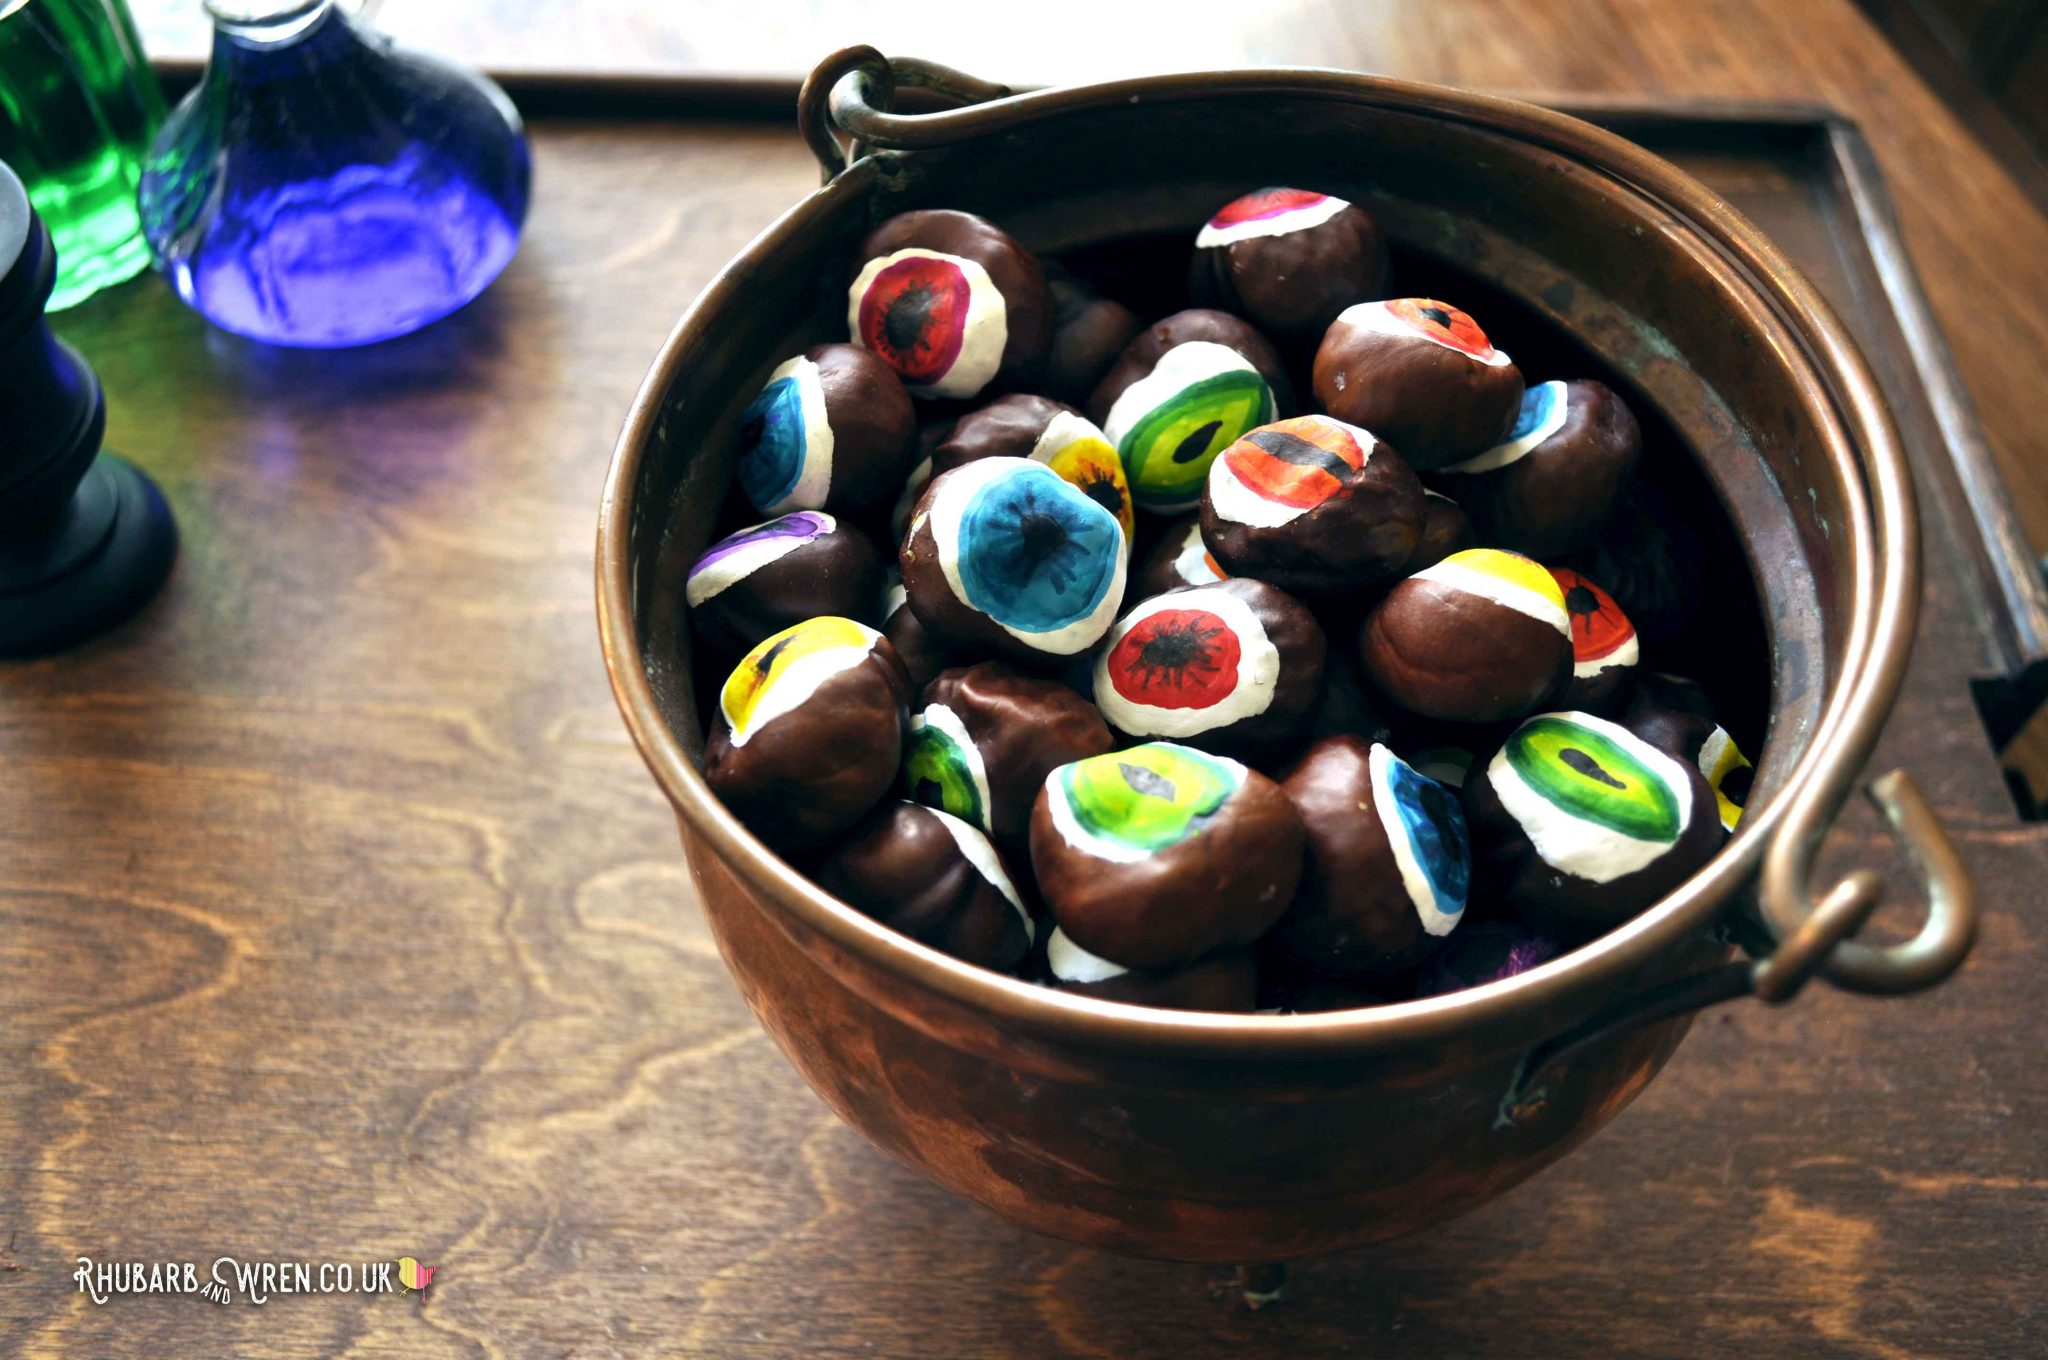 Cauldron full of DIY conker eyeballs for a fun kids Halloween activity.